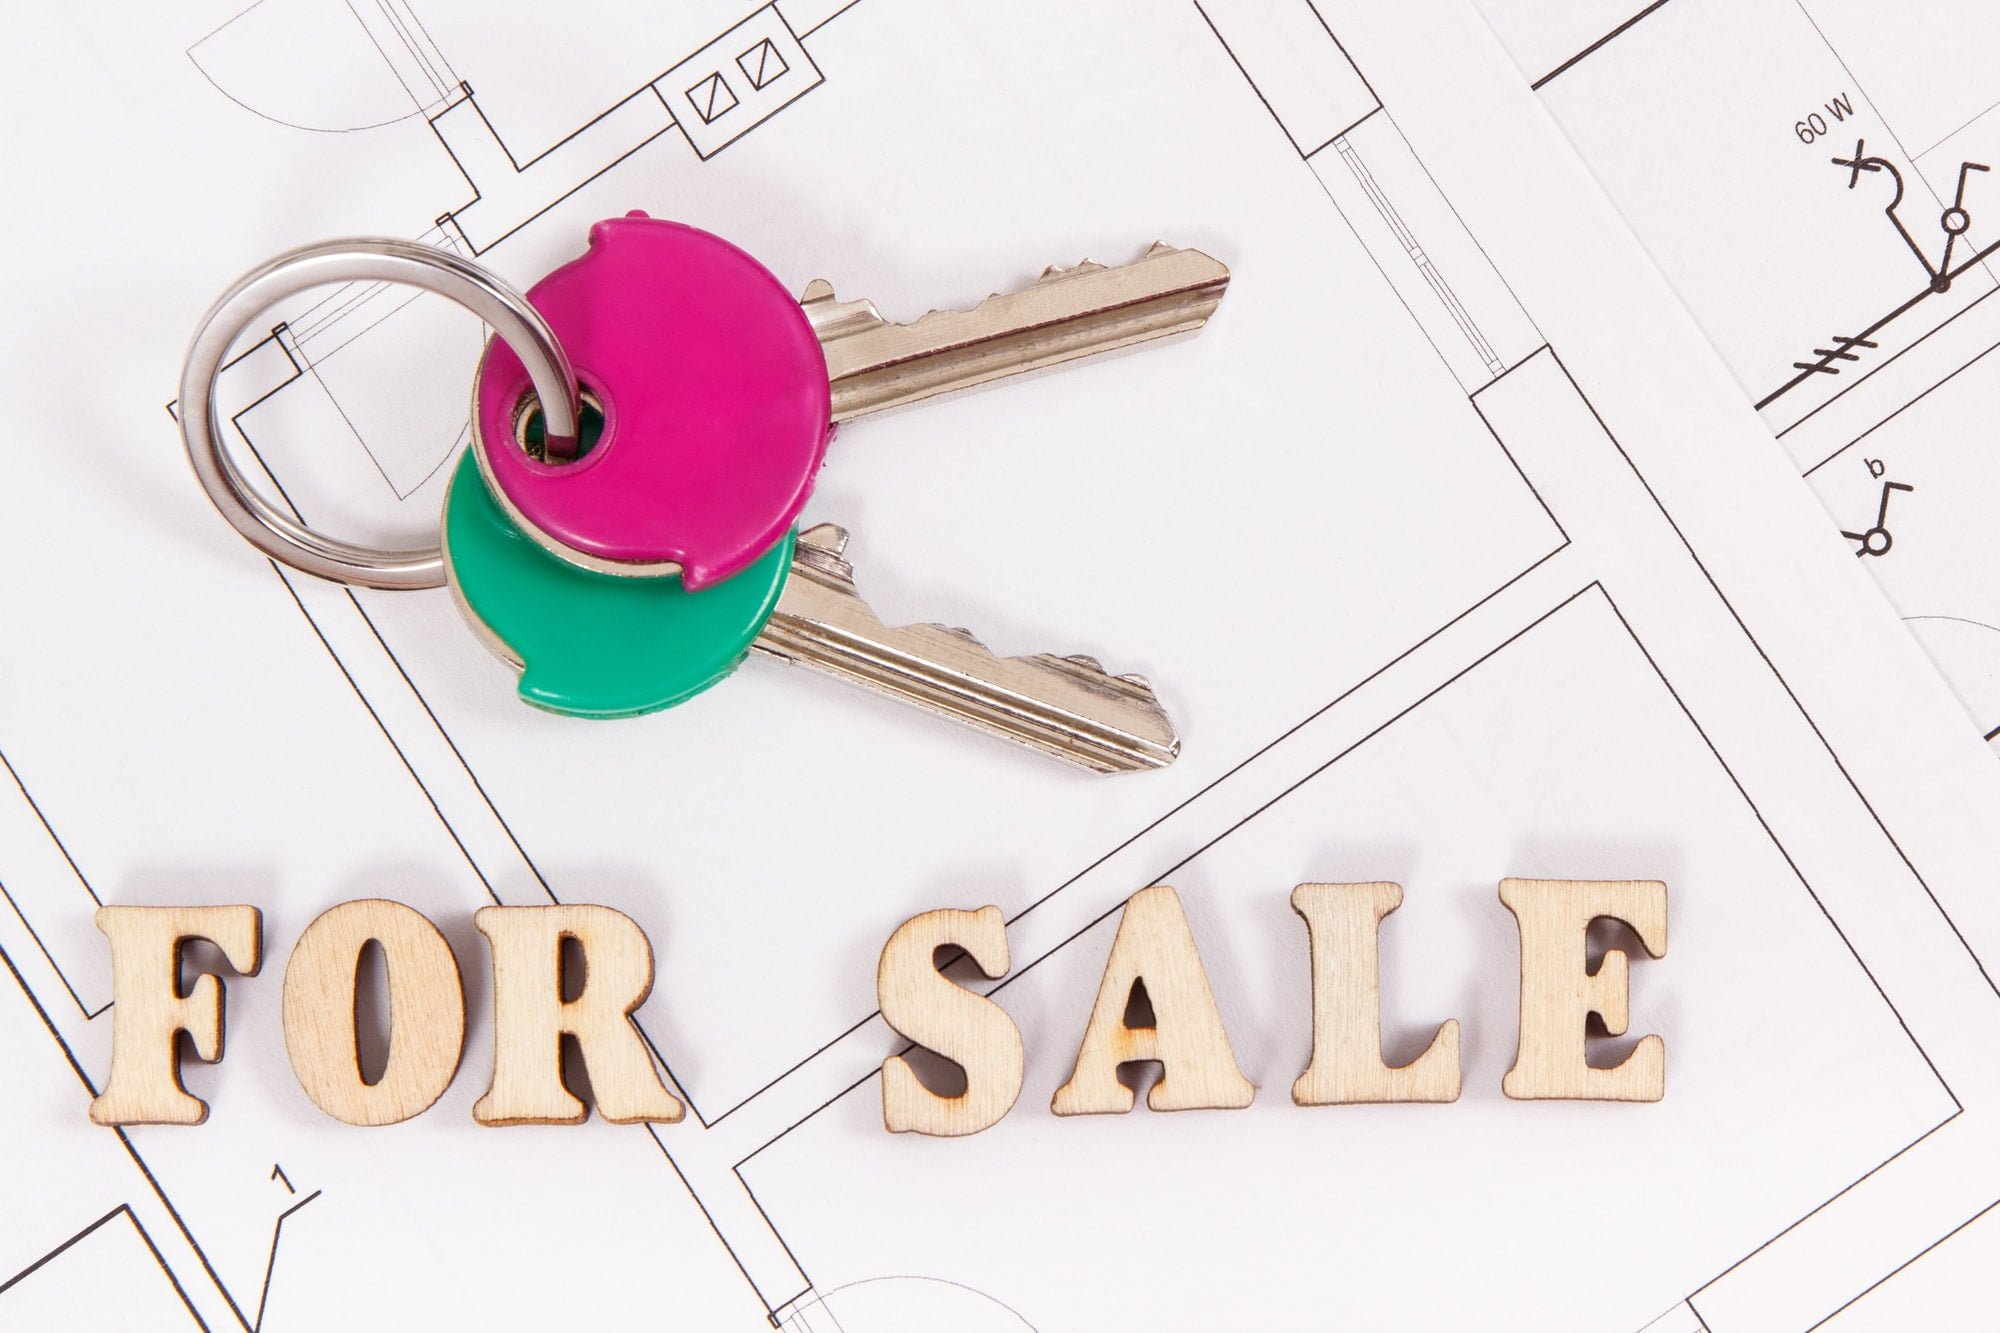 Home keys with inscription for sale on housing plan, concept of selling or buying house